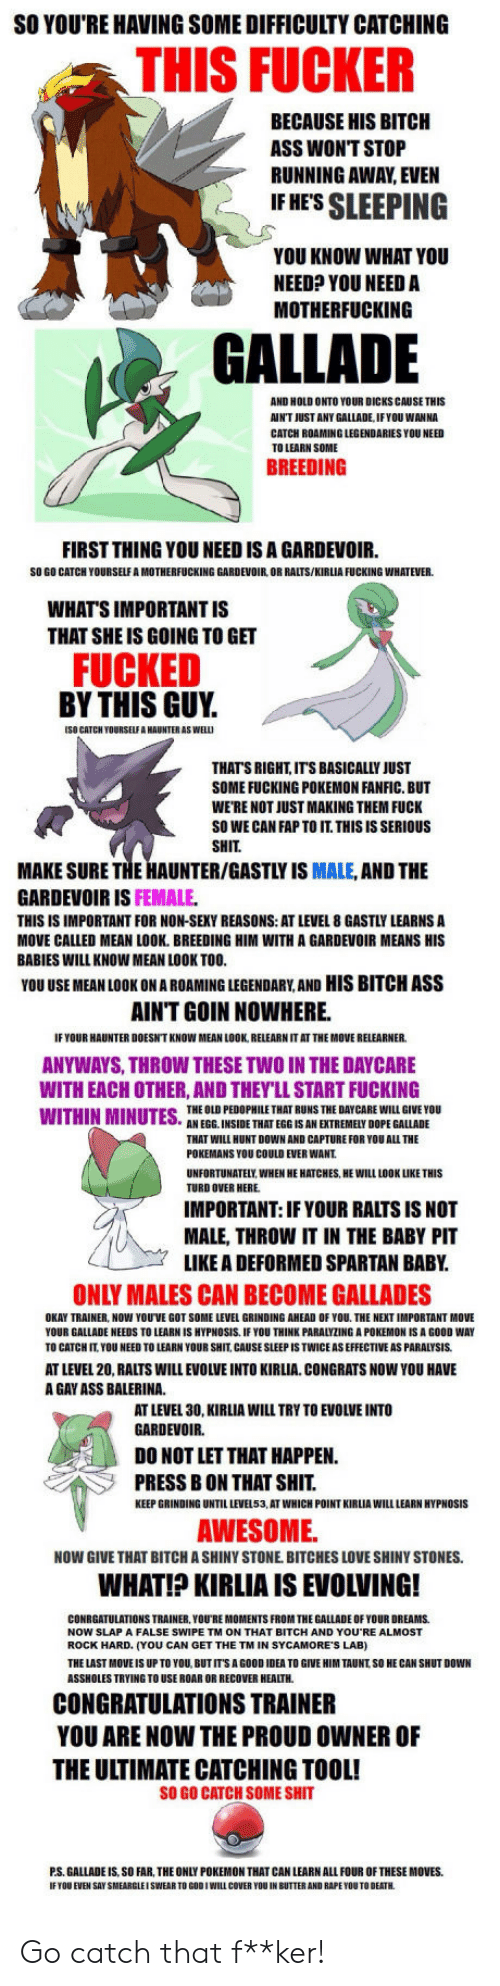 gardevoir: SO YOU'RE HAVING SOME DIFFICULTY CATCHING  THIS FUCKER  BECAUSE HIS BITCH  ASS WONT STOP  RUNNING AWAY EVEN  IF HES SLEEPING  YOU KNOW WHAT YOU  NEED? YOU NEED A  MOTHERFUCKING  GALLADE  AND HOLD ONTO YOUR DICKS CAUSE THIS  AIN'T JUST ANY GALLADE, IFYOU WANNA  CATCH ROAMING LEGENDARIES YOU NEED  TO LEARN SOME  BREEDING  FIRST THING YOU NEED IS A GARDEVOIR.  SO GO CATCH YOURSELF A MOTHERFUCKING GARDEVOIR, OR RALTS/KIRLIA FUCKING WHATEVER  WHAT'S IMPORTANT IS  THAT SHE IS GOING TO GET  FUCKED  BY THIS GUY.  (SO CATCH YOURSELF A HAUNTER AS WEL  THATS RIGHT, ITS BASICALLY JUST  SOME FUCKING POKEMON FANFIC. BUT  WE'RE NOT JUST MAKING THEM FUCK  SO WE CAN FAP TO IT. THISISSERIOUS  SHIT  MAKE SURE THE HAUNTER/GASTLY IS MALE, AND THE  GARDEVOIR IS FEMALE  THIS IS IMPORTANT FOR NON-SEKY REASONS: AT LEVEL 8 GASTLY LEARNS A  MOVE CALLED MEAN LOOK. BREEDING HIM WITH A GARDEVOIR MEANS HIS  BABIES WILL KNOW MEAN LOOK TOO  YOU USE MEAN LOOK ON A ROAMING LEGENDARY,AND HIS BITCH ASS  AINT GOIN NOWHERE.  IF YOUR HAUNTER DOESN'T KNOW MEAN LOOK, RELEARN IT AT THE MOVE RELEARNER  ANYWAYS, THROW THESE TWO IN THE DAYCARE  WITH EACH OTHER, AND THEY'LL START FUCKING  THE OLD PEDOPHILE THAT RUNS THE DAY CARE WILL GIVE YOU  AN EGG. INSIDE THAT EGG IS AN EXTREMELY DOPE GALLADE  THAT WILL HUNT DOWN AND CAPTURE FOR YOU ALL THE  POKEMANS YOU COULD EVER WANT  UNFORTUNATELY WHEN HE HATCHES, HE WILL LOOK LIKE THIS  TURD OVER HERE  IMPORTANT: IF YOUR RALTS IS NOT  MALE, THROW IT IN THE BABY PIT  LIKE A DEFORMED SPARTAN BABY  ONLY MALES CAN BECOME GALLADES  OKAY TRAINER, NOW YOUVE GOT SOME LEVEL GRINDING AHEAD OF YOU THE NEXT IMPORTANT MOVE  YOUR GALLADE NEEDS TO LEARN IS HYPNOSIS IF YOU THINK PARALYZING A POKEMON IS A GOOD WAY  TO CATCH IT. YOU NEED TO LEARN YOUR SHIT, CAUSE SLEEP IS TWICE AS EFFECTIVE AS PARALYSIS  AT LEVEL 20, RALTS WILL EVOLVE INTO KIRLIA CONGRATS NOW YOU HAVE  A GAY ASS BALERINA  AT LEVEL 30, KIRLIA WILL TRY TO EVOLVE INTO  GARDEVOIR.  DO NOT LET THAT HAPPEN  PRESS B ON THAT SHIT  KEEP GRINDING UNTIL LEVEL53, AT WHICH POINT KIRLIA WILL LEARN HYPNOSIS  AWESOME  NOW GIVE THAT BITCH A SHINY STONE. BITCHES LOVE SHINY STONES.  WHAT!? KIRLIA IS EVOLVING!  CONRGATULATIONS TRAINER, YOU'RE MOMENTS FROM THE GALLADE OF YOUR DREAMS  NOW SLAP A FALSE SWIPE TM ON THAT BITCH AND YOU RE ALMOST  ROCK HARD. (YOU CAN GET THE TM IN SYCAMORE'S LAB)  THE LAST MOVE IS UP TO YOU, BUTITS A GOOD IDEA TO GIVE HIM TAUNT SO HE CAN SHUT DOWN  ASSHOLES TRYING TO USE ROAR OR RECOVER HEALTH  CONGRATULATIONS TRAINER  YOU ARE NOW THE PROUD OWNER OF  THE ULTIMATE CATCHING TOOL!  SO GO CATCH SOME SHIT  P.S. GALLADE IS, SO FAR, THE ONLY POKEMON THAT CAN LEARN ALL FOUR OF THESE MOVES.  IF TOU EVEN SAY SMEARGLEI SWEAR TO GOOIWILL COVER YOU IN BUTTER AND RAPE YOU TO DEATH Go catch that f**ker!